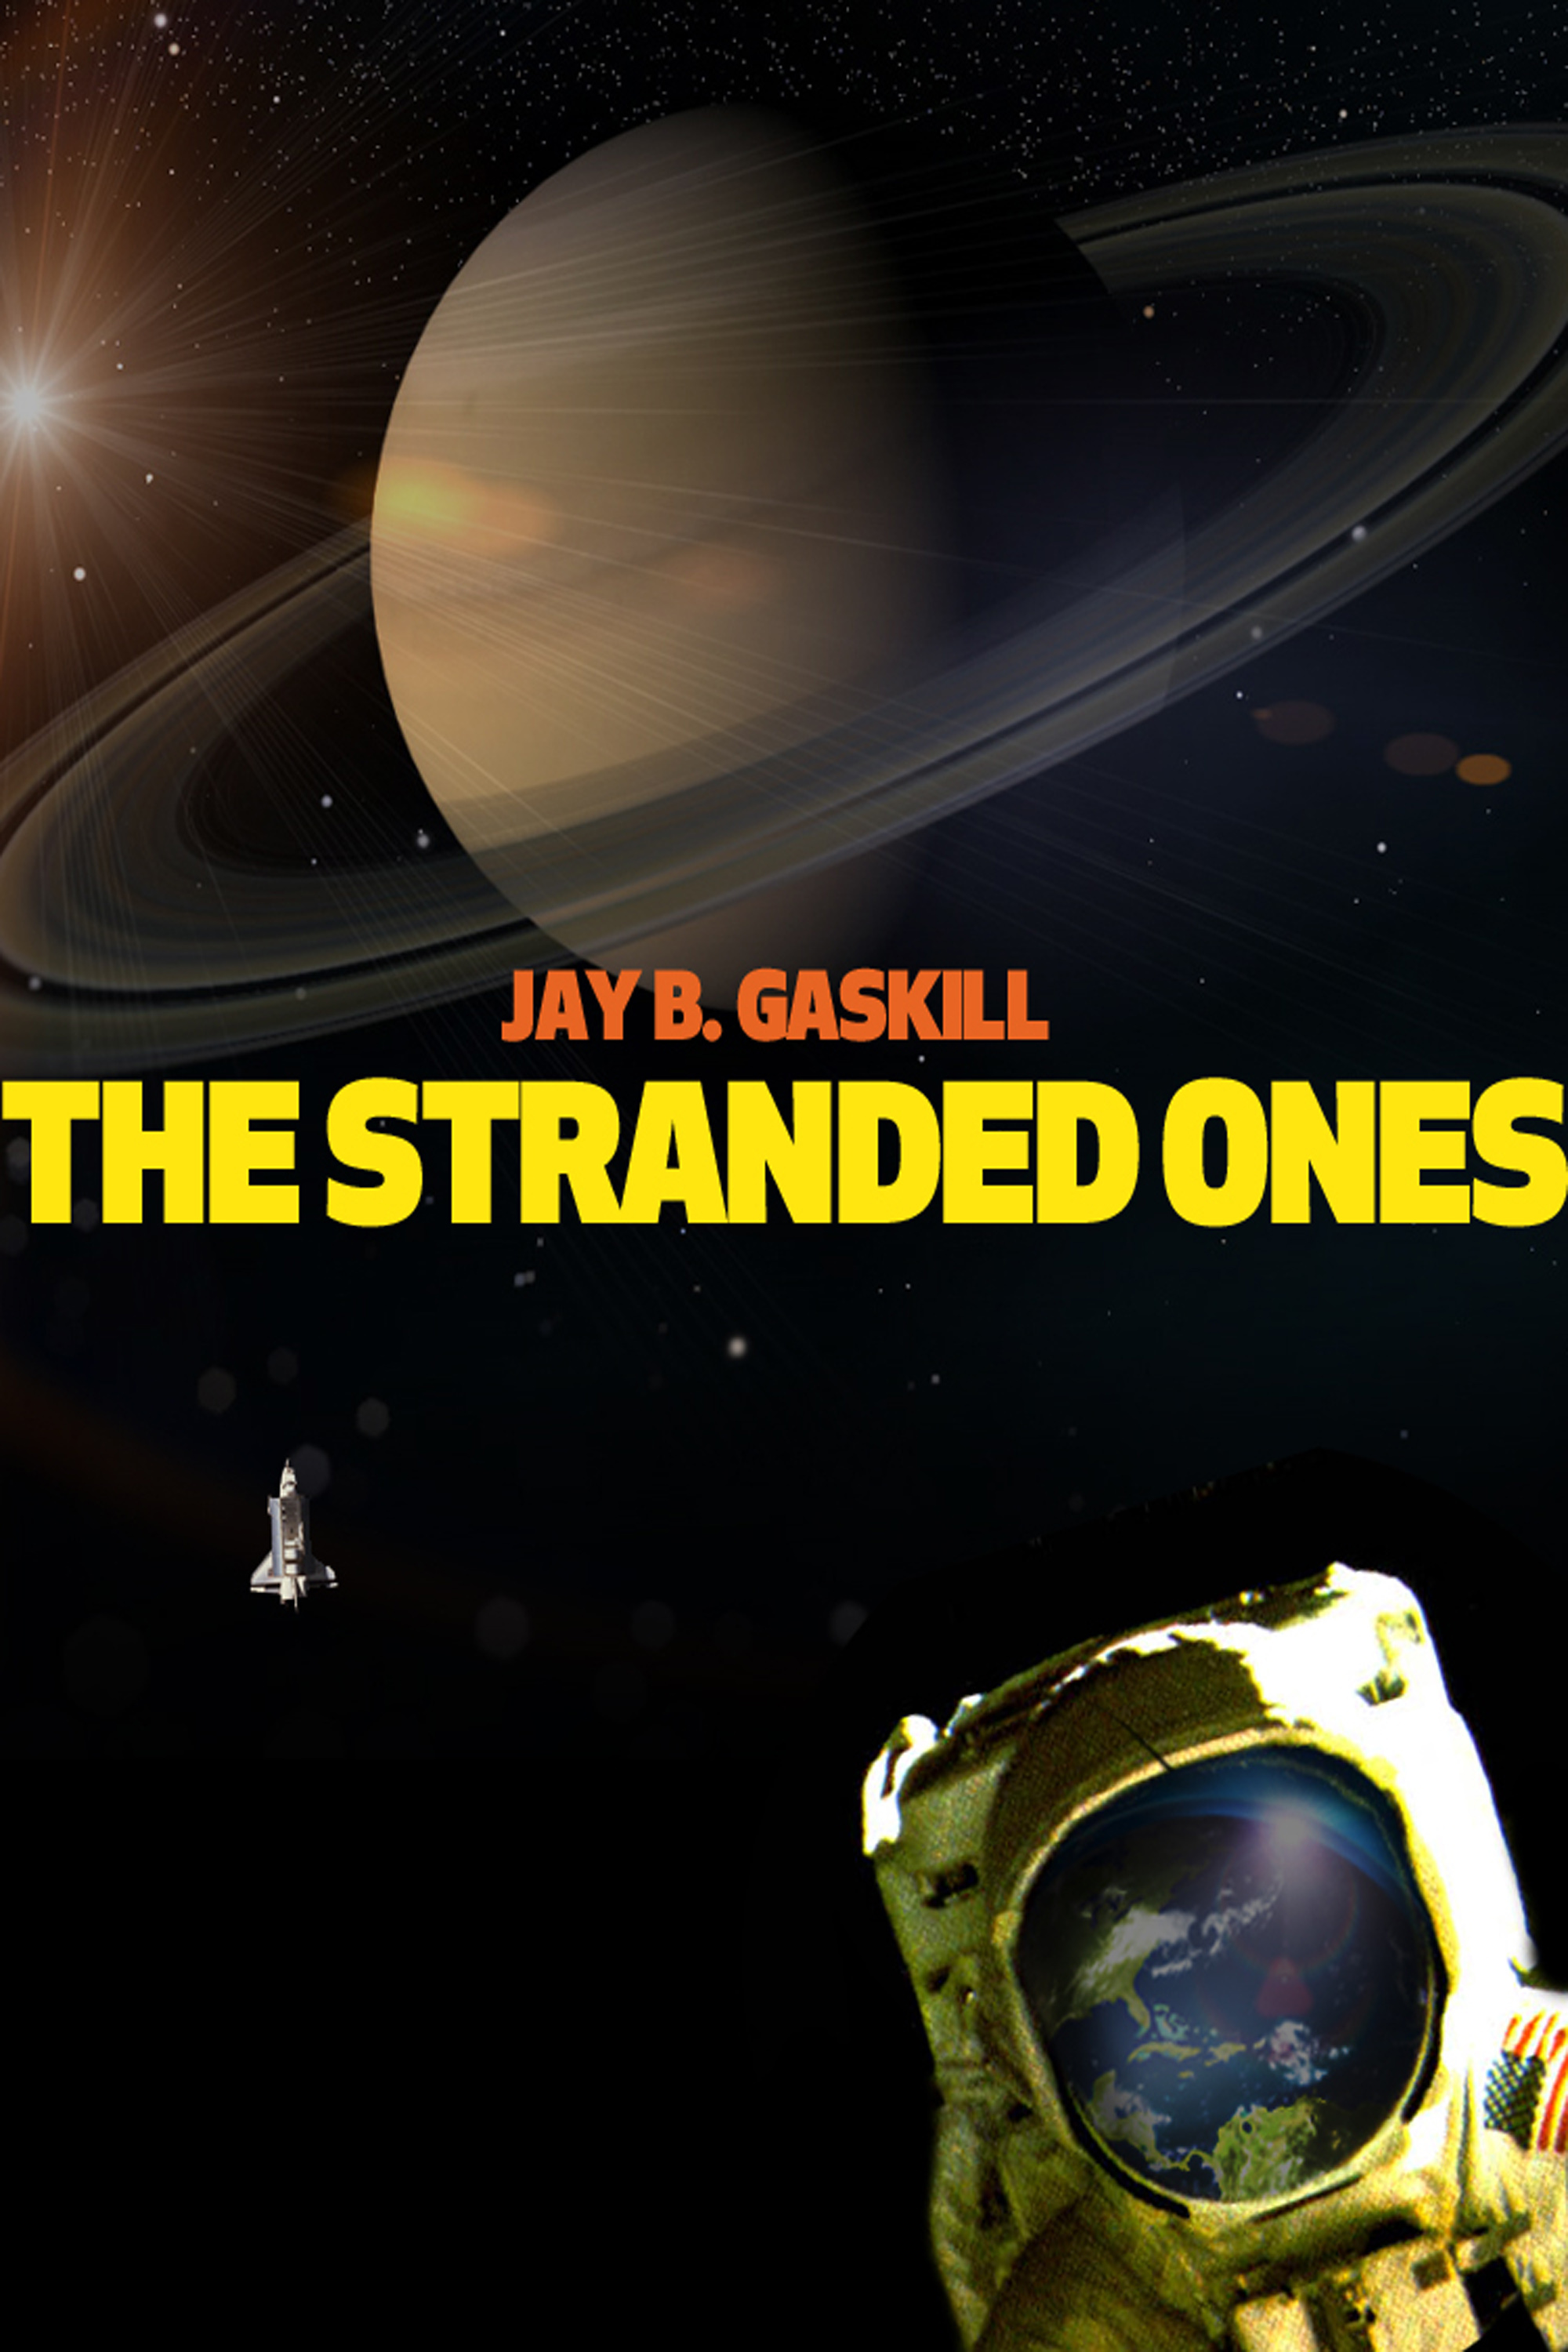 The Stranded Ones